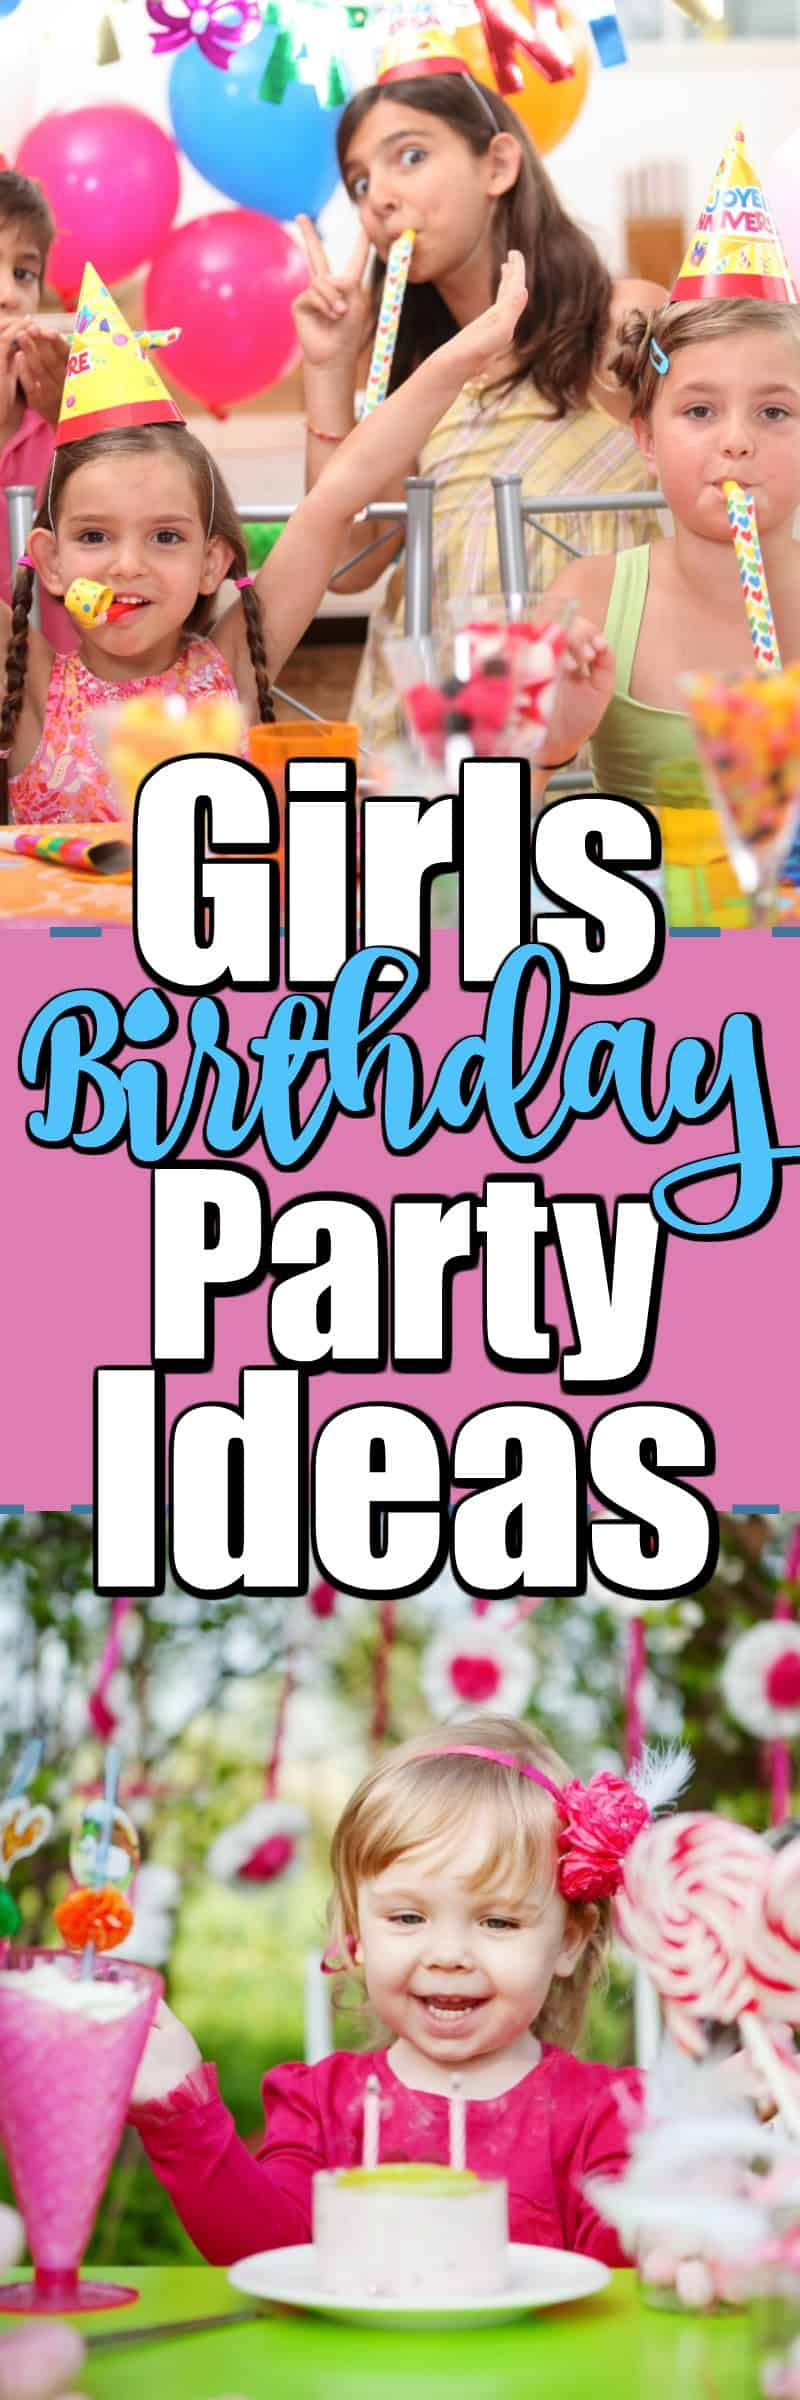 Girls Birthday Party Ideas will help you find the best party theme, party favors, party decorations to make a girls birthday party spectacular. #girlsbirthdayparty #girlspartyideas #birthdayparty